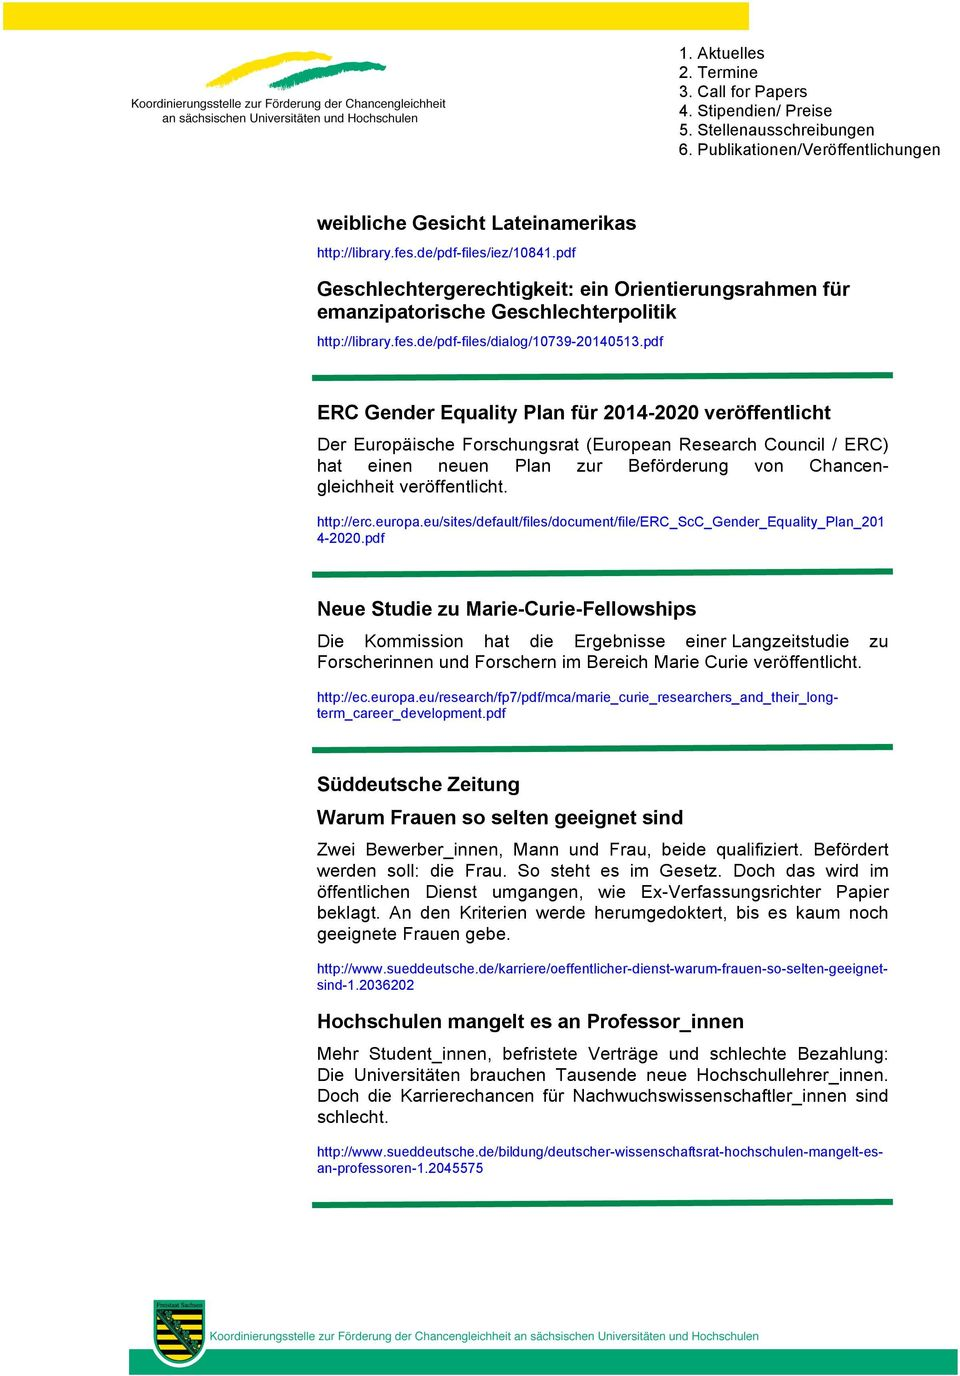 http://erc.europa.eu/sites/default/files/document/file/erc_scc_gender_equality_plan_201 4-2020.